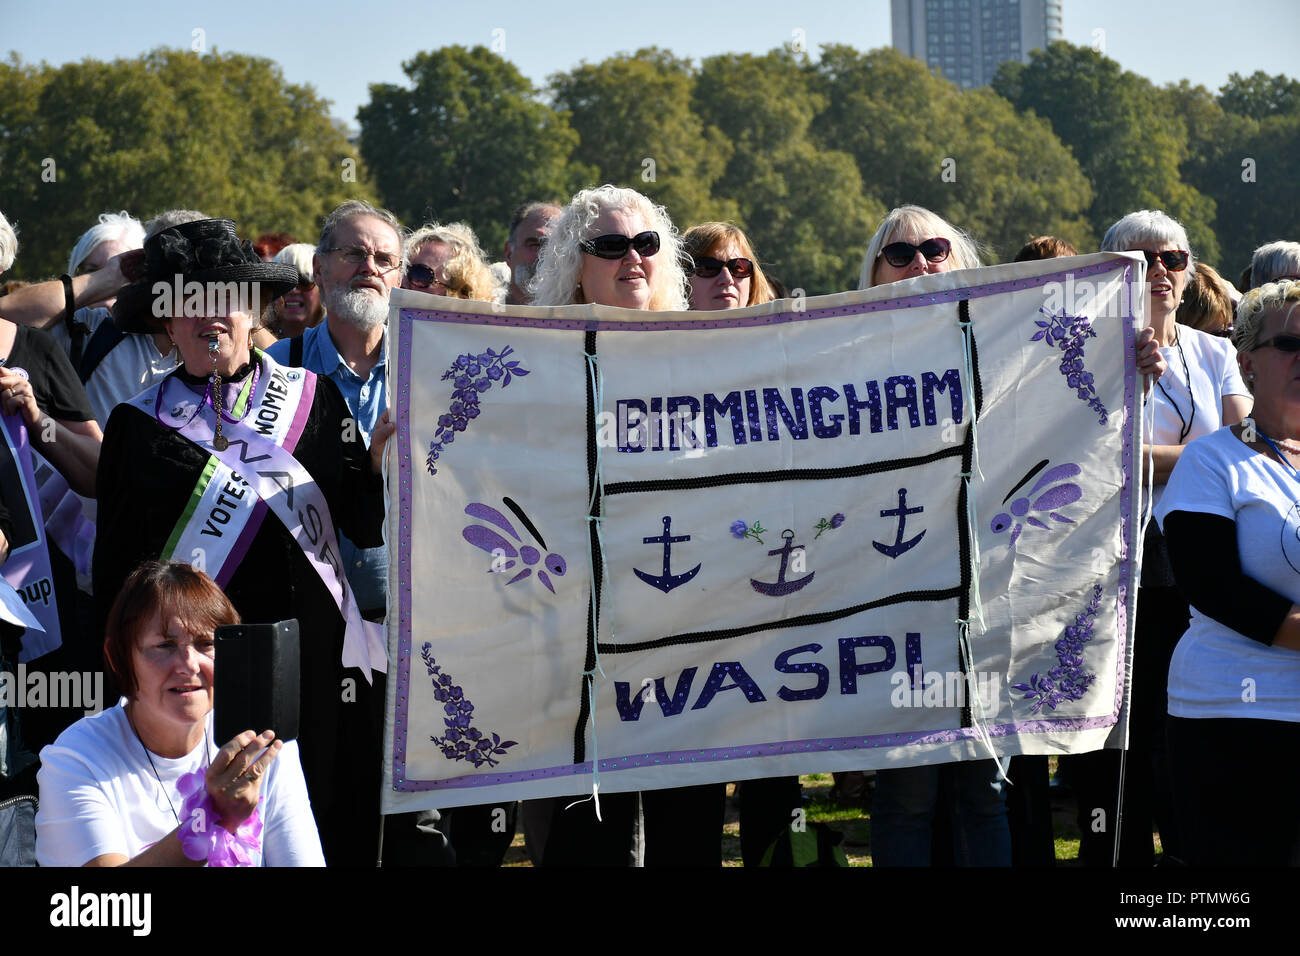 London, UK. 10th Oct 2018. Hundreds of pensioner rally The 1950s Women's State Pension Campaign, Back to 60, We Paid In, You Paid Out and other women's pension groups will join together 'Shoulder to Shoulder' as #OneVoice chanting Theresa May how many people you robs today demand their pension to be pay now not when we will dead at Reformer's Tree, Hyde Park, London, UK. 10 October 2018. Credit: Picture Capital/Alamy Live News Stock Photo